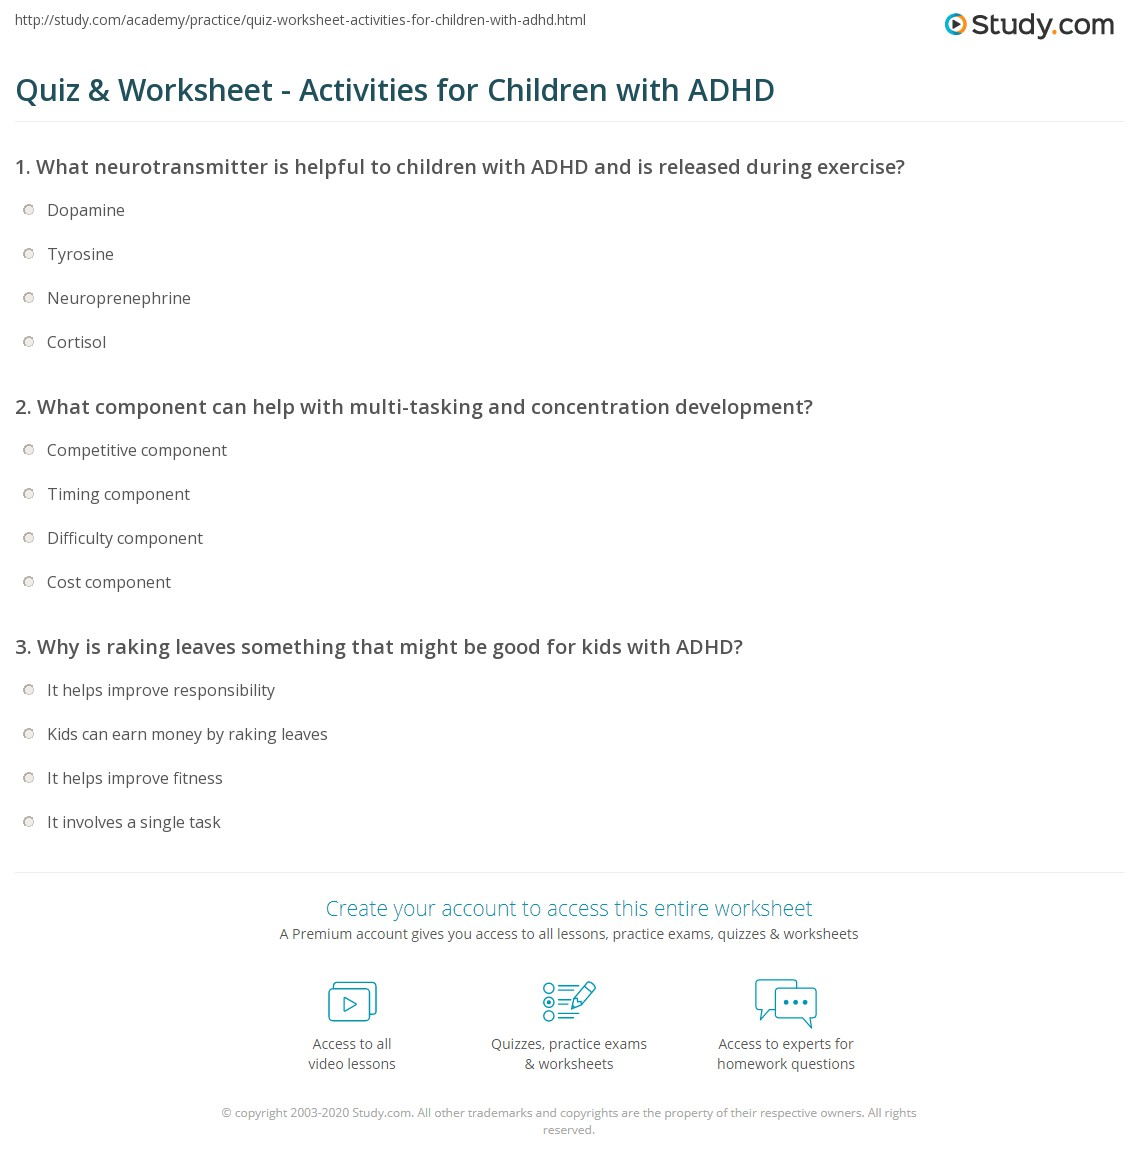 Quiz & Worksheet - Activities for Children with ADHD | Study.com